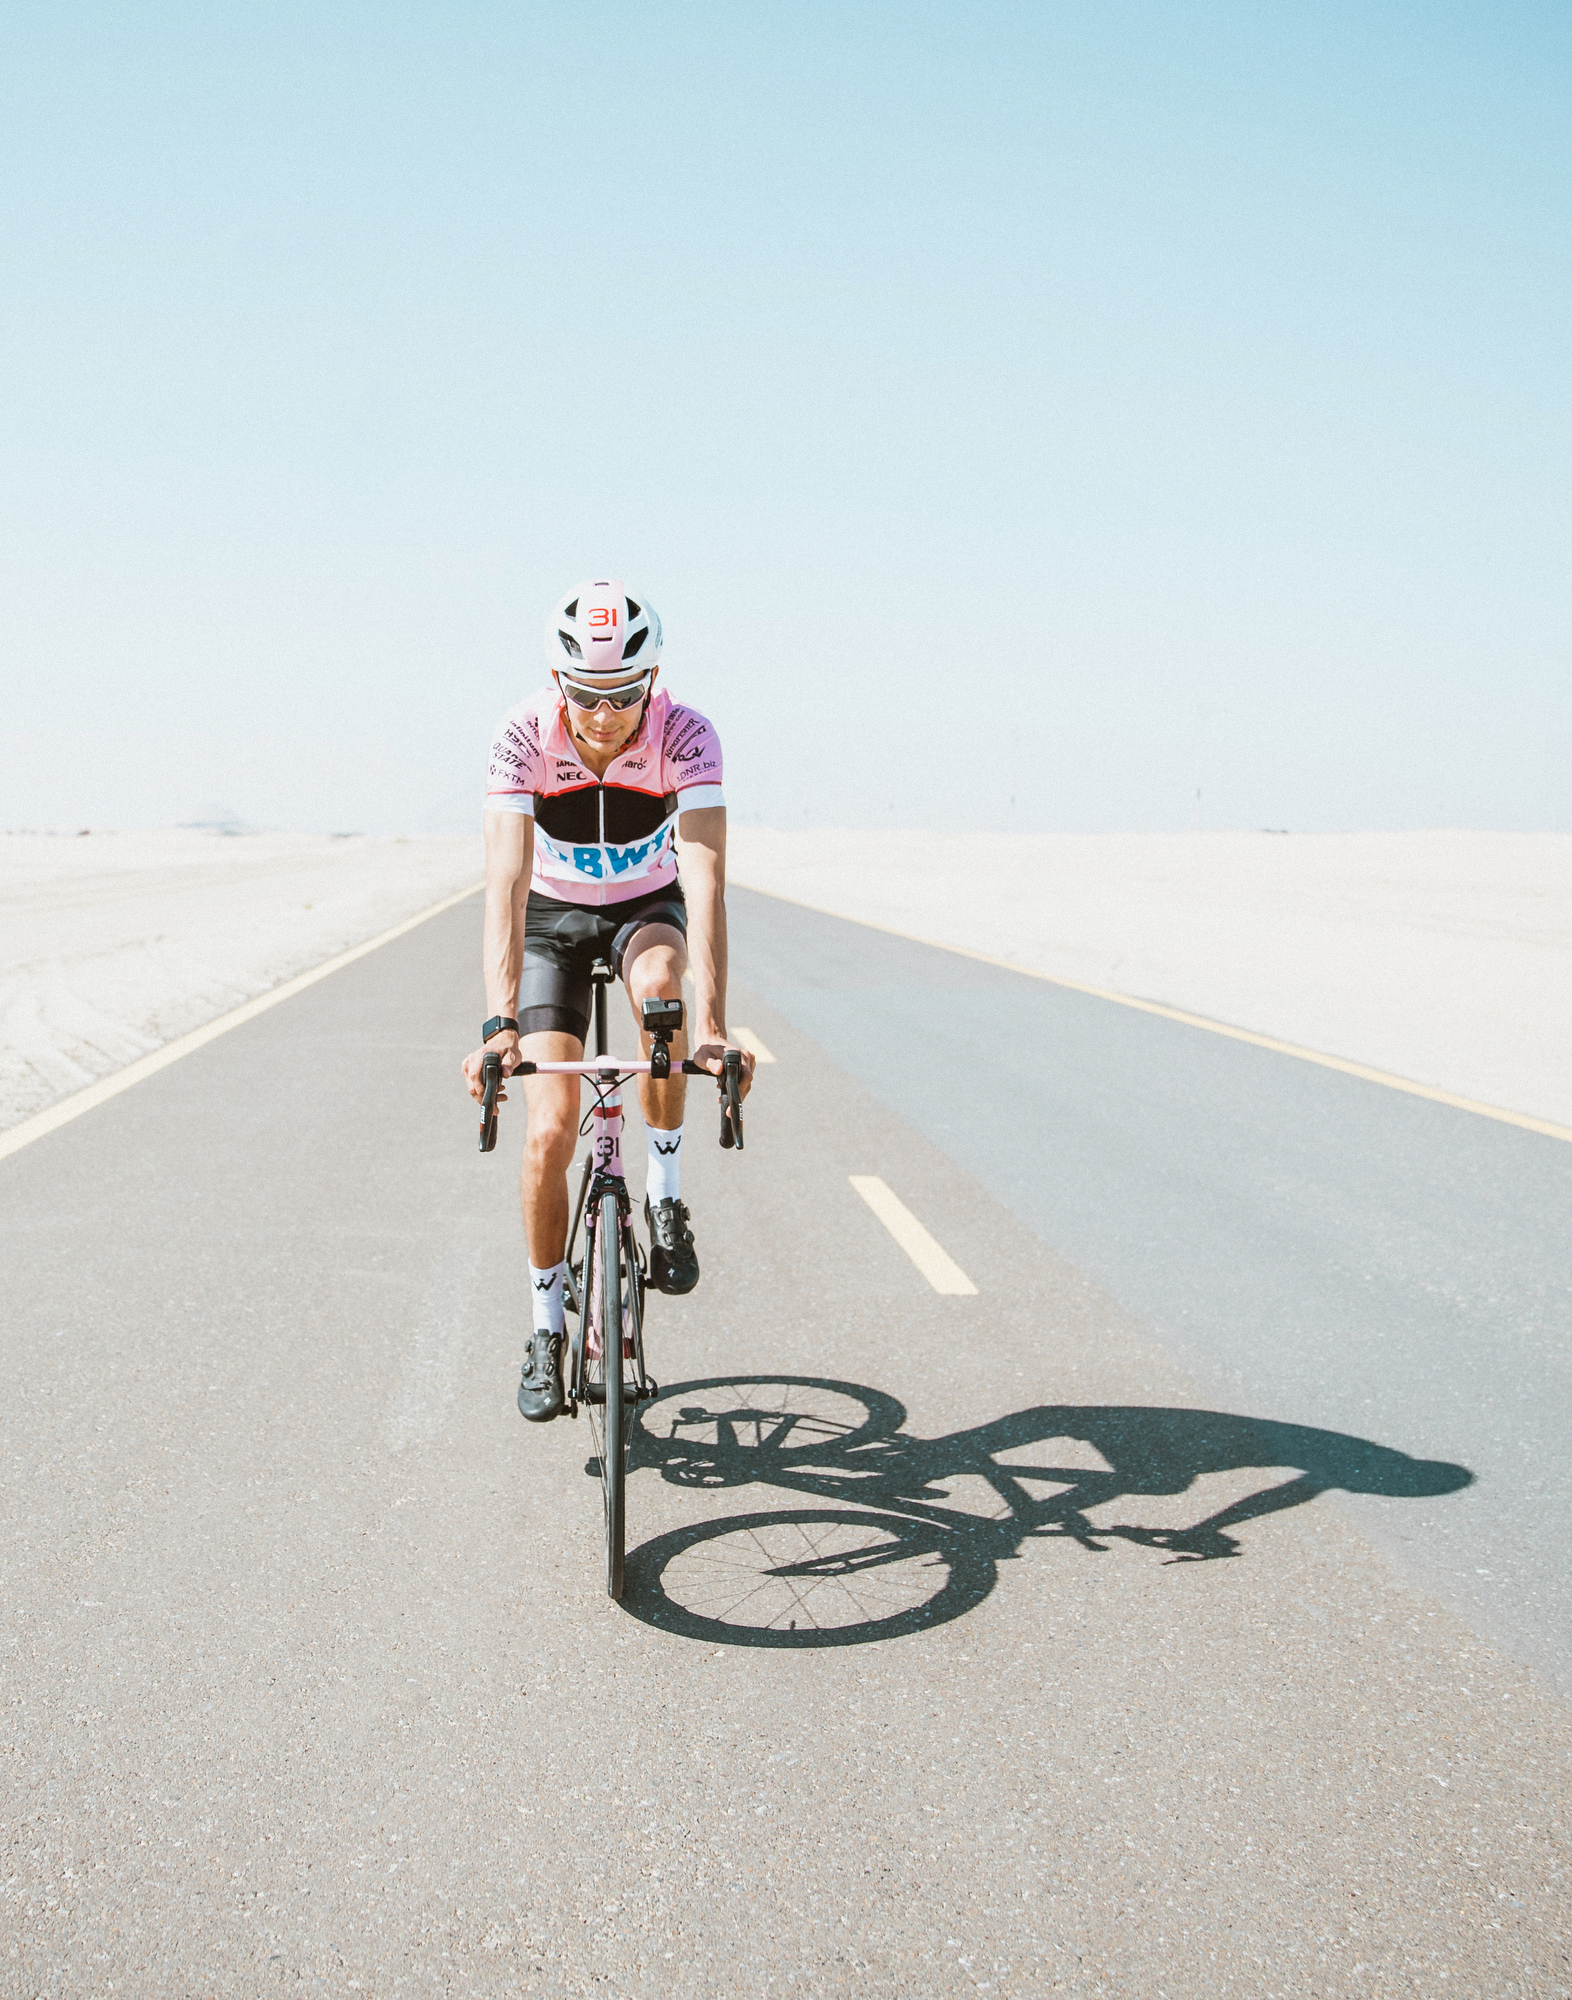 Esteban Ocon, Force India. F1 Racing Magazine Shoot with WyndyMilla cycling in Abu Dhabi, UAE.